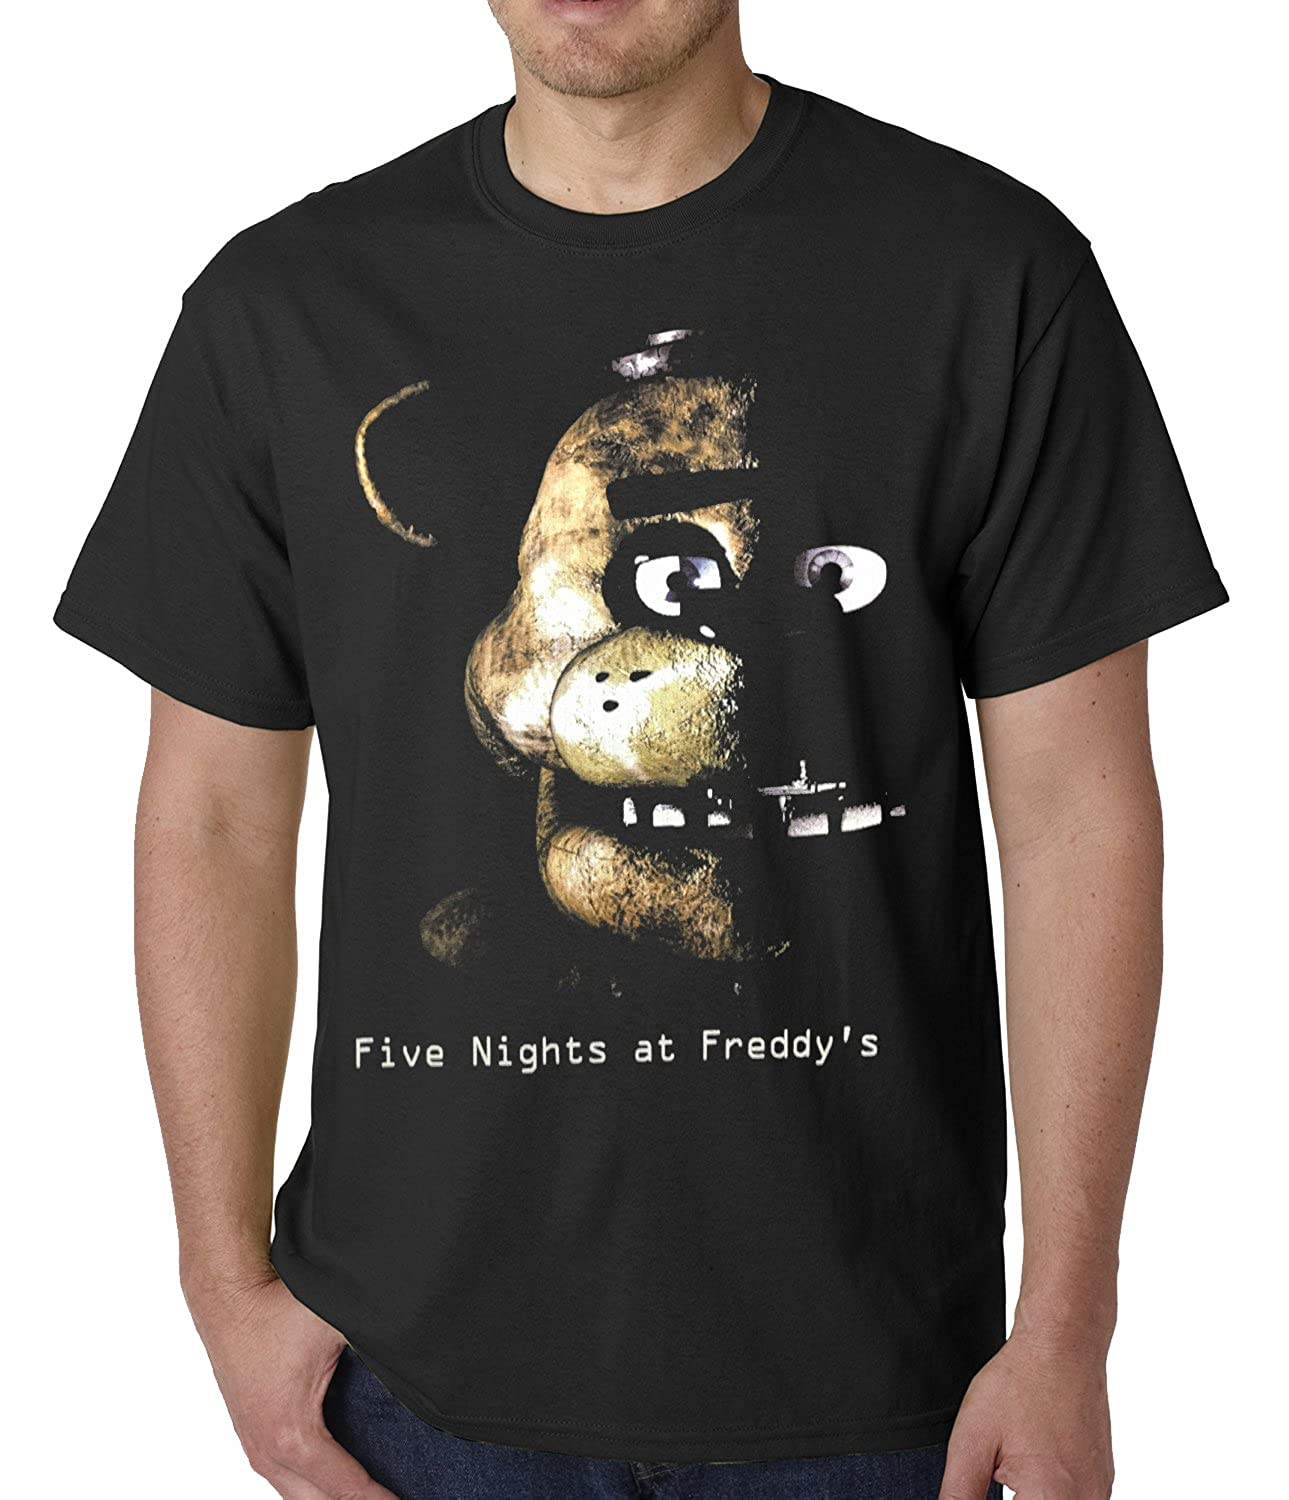 Five Nights at Freddy's Eclipse Youth T-Shirt Bioworld